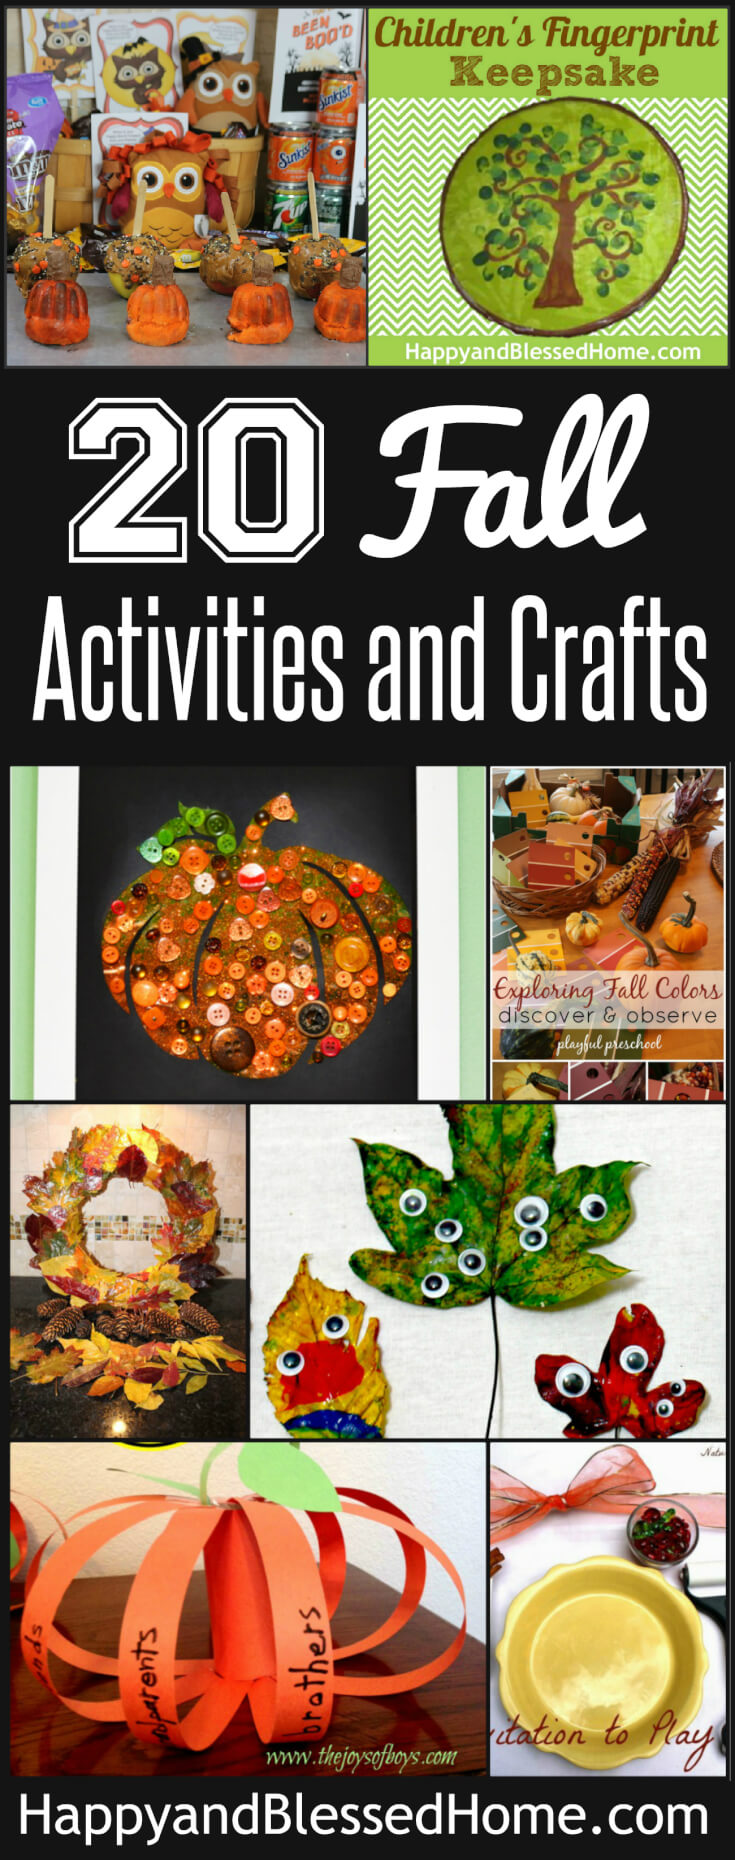 20 Fall Activities and Crafts for Families